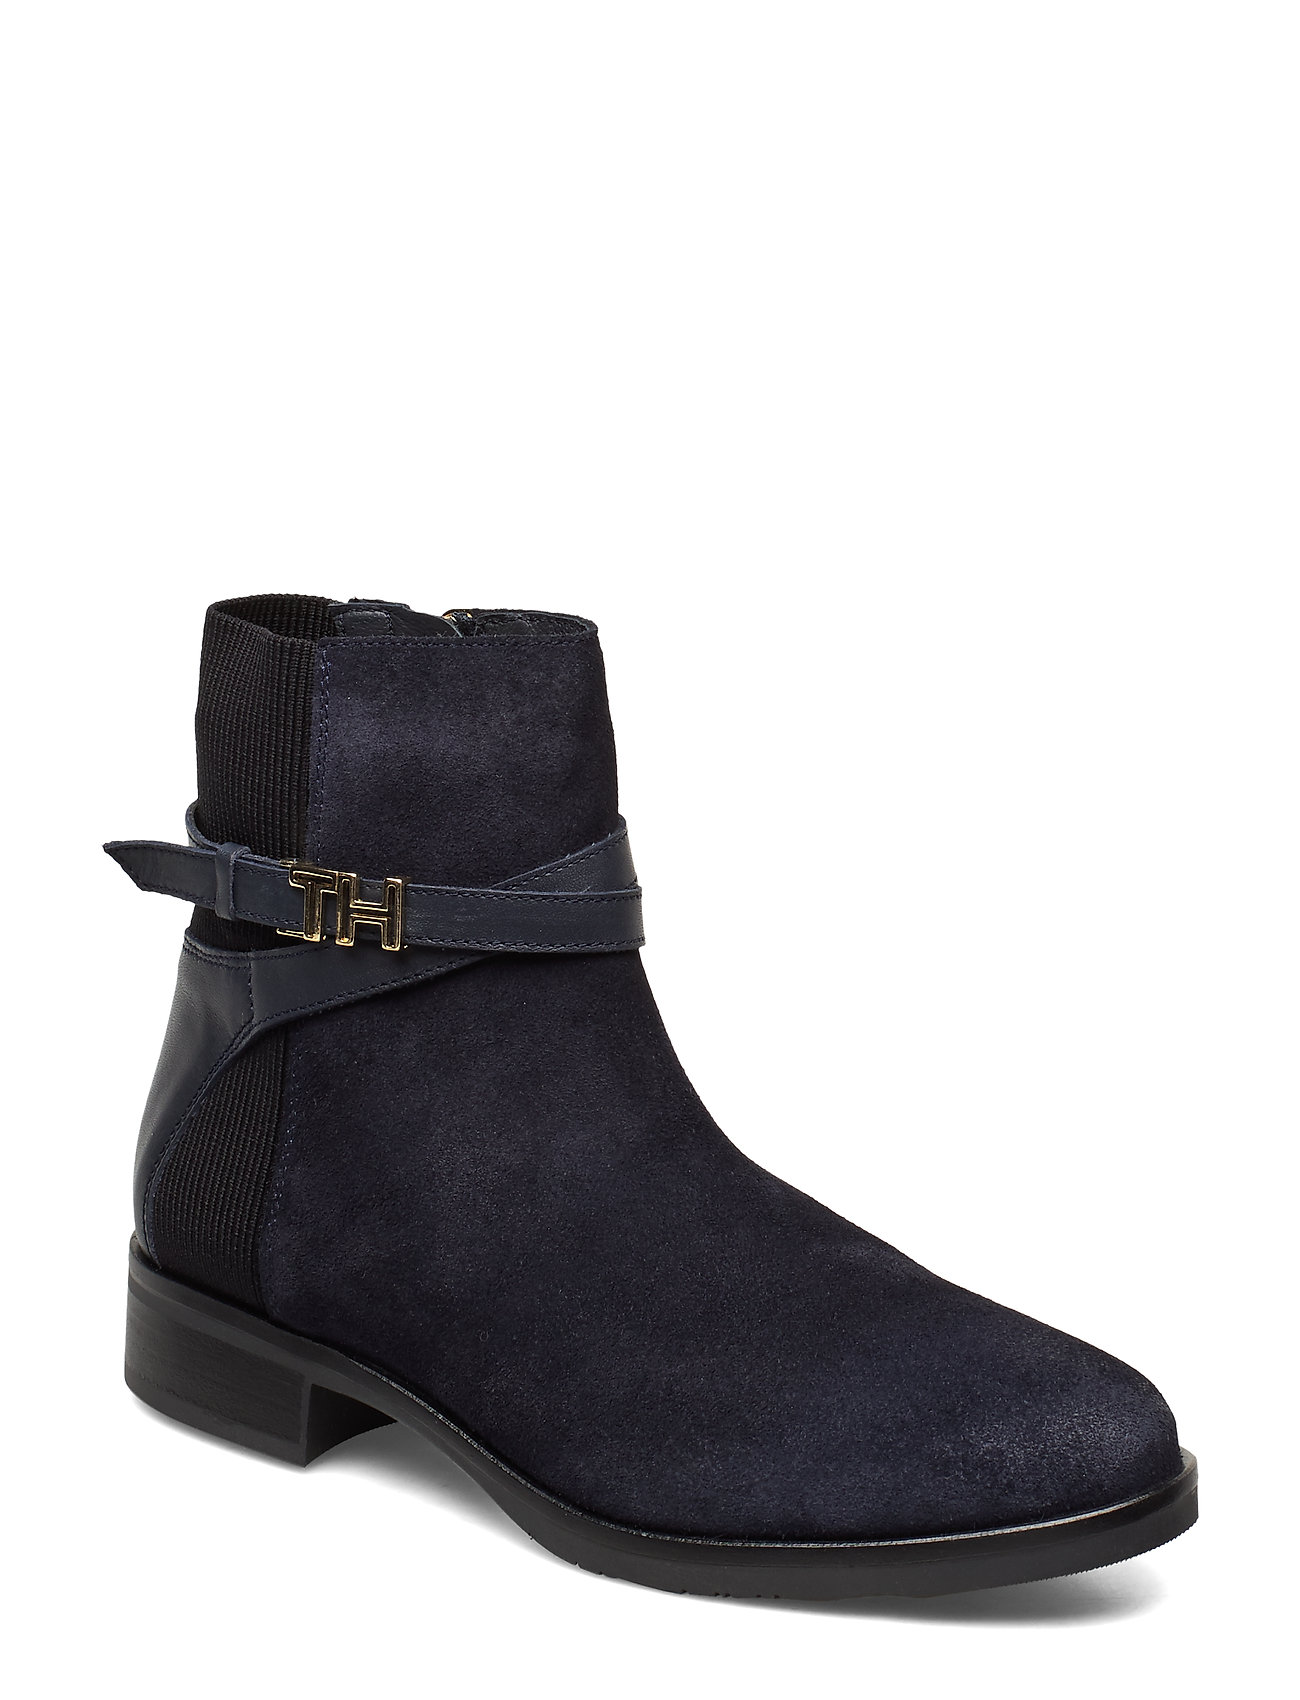 Image of Th Hardware Suede Flat Bootie Shoes Boots Ankle Boots Ankle Boots Flat Heel Sort Tommy Hilfiger (3245421519)